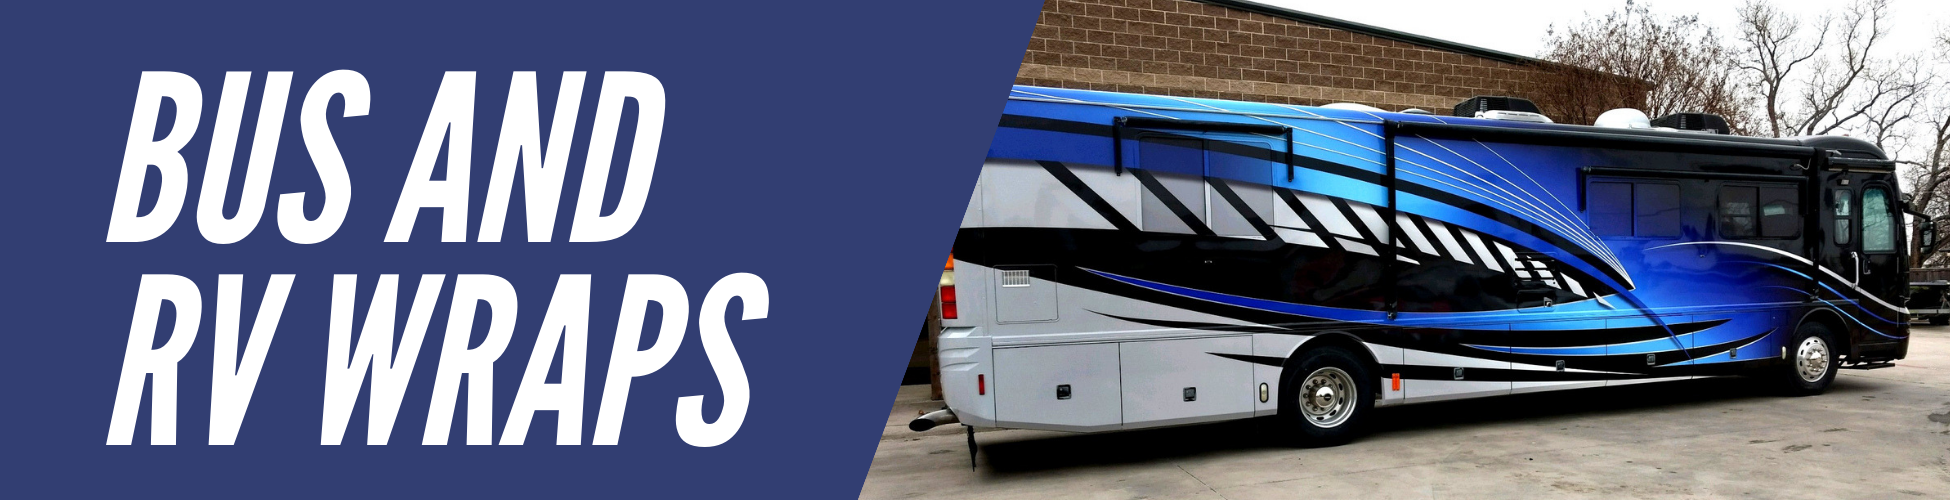 bus-and-rv-wraps-banner-v3.png